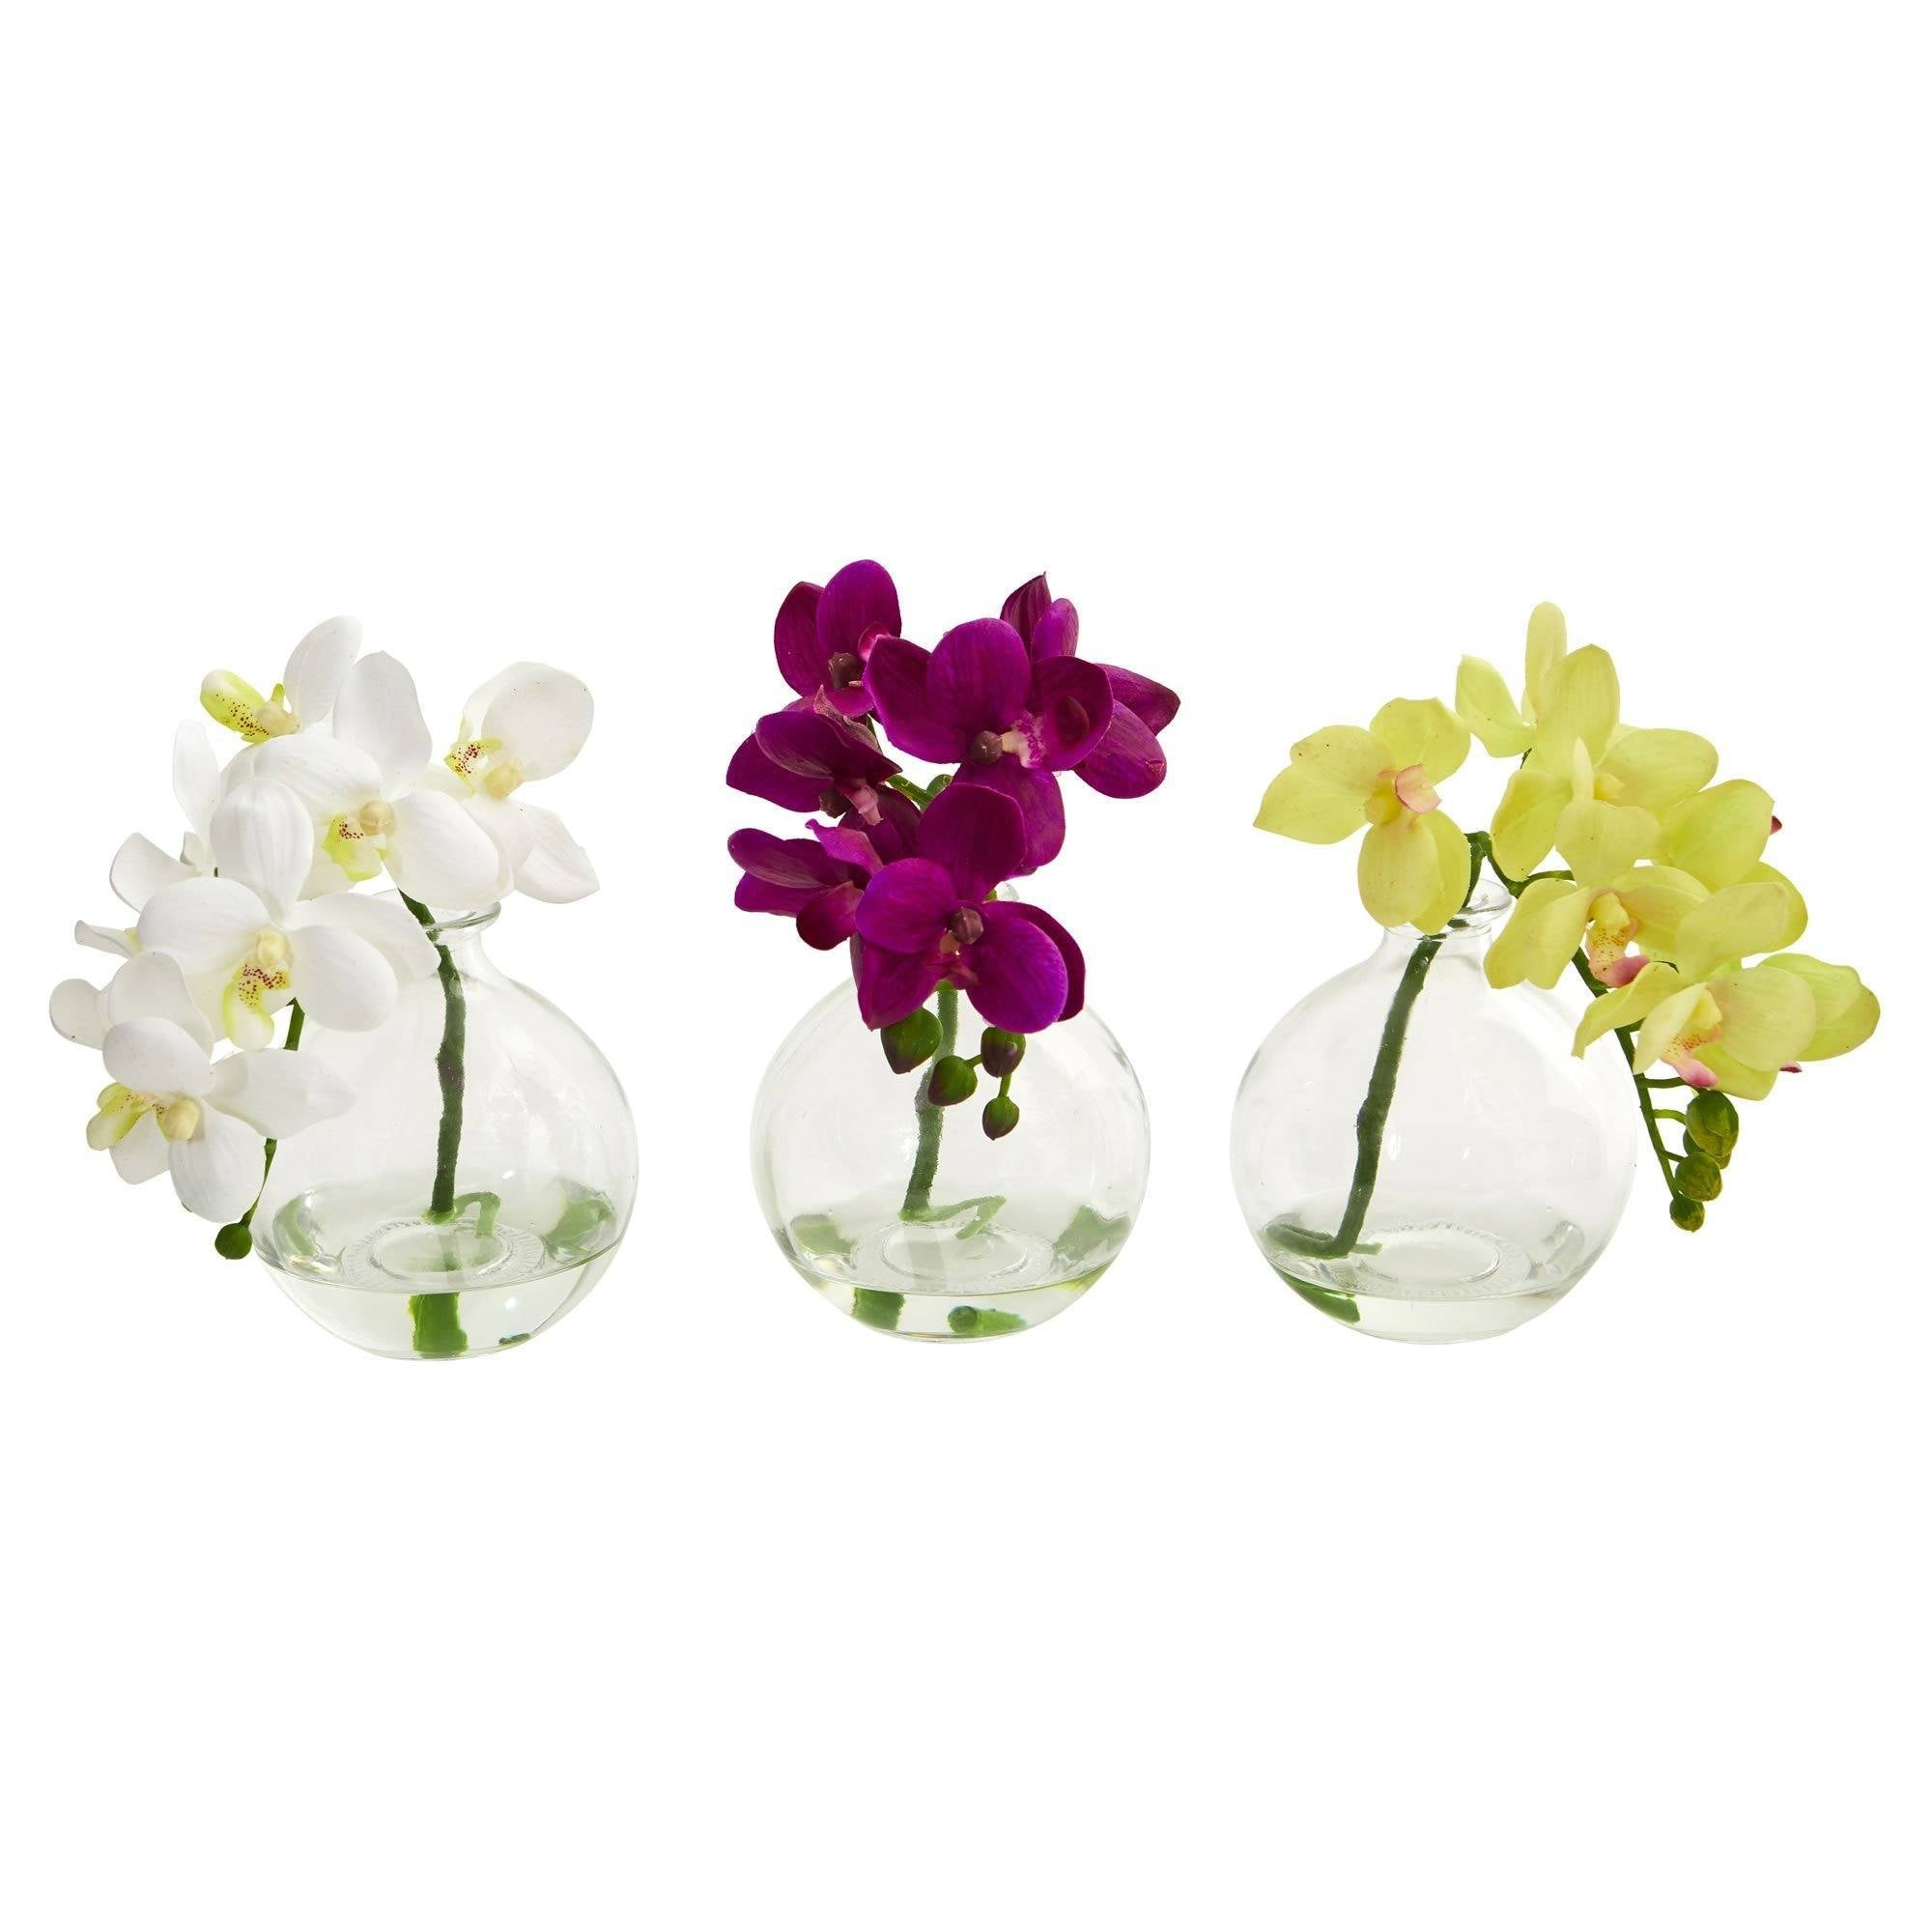 9 Phalaenopsis Orchid Artificial Arrangement In Vase Set Of 3 Nearly Natural